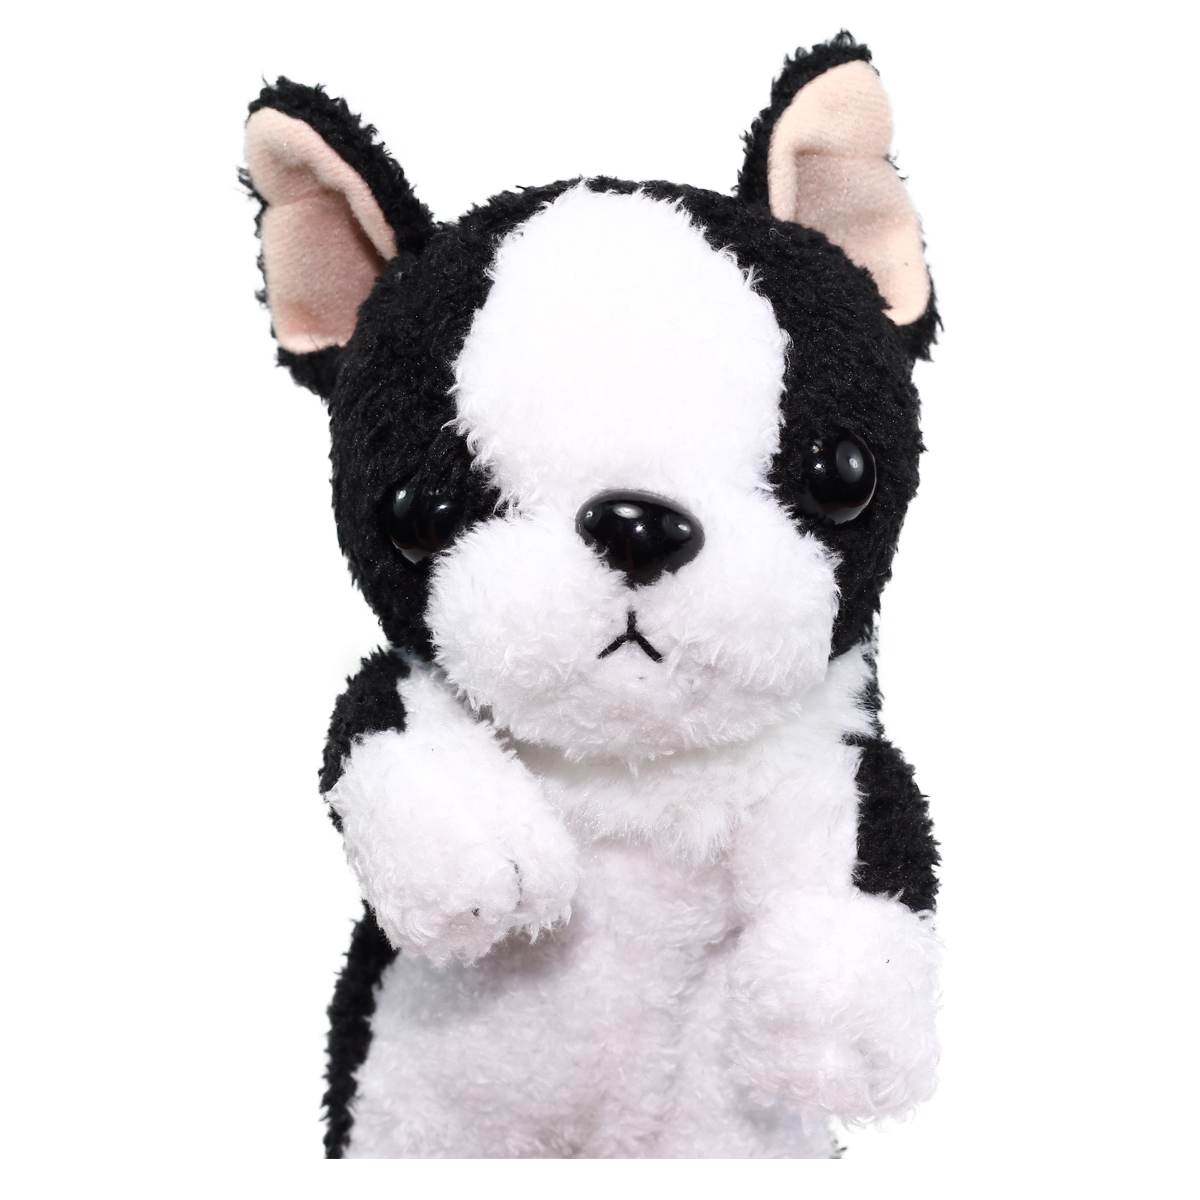 Dog Pencil Case Pouch Stuffed Animal Back To School Collection Fluffy Black/ White Boston Terrier Plush 10 Inches